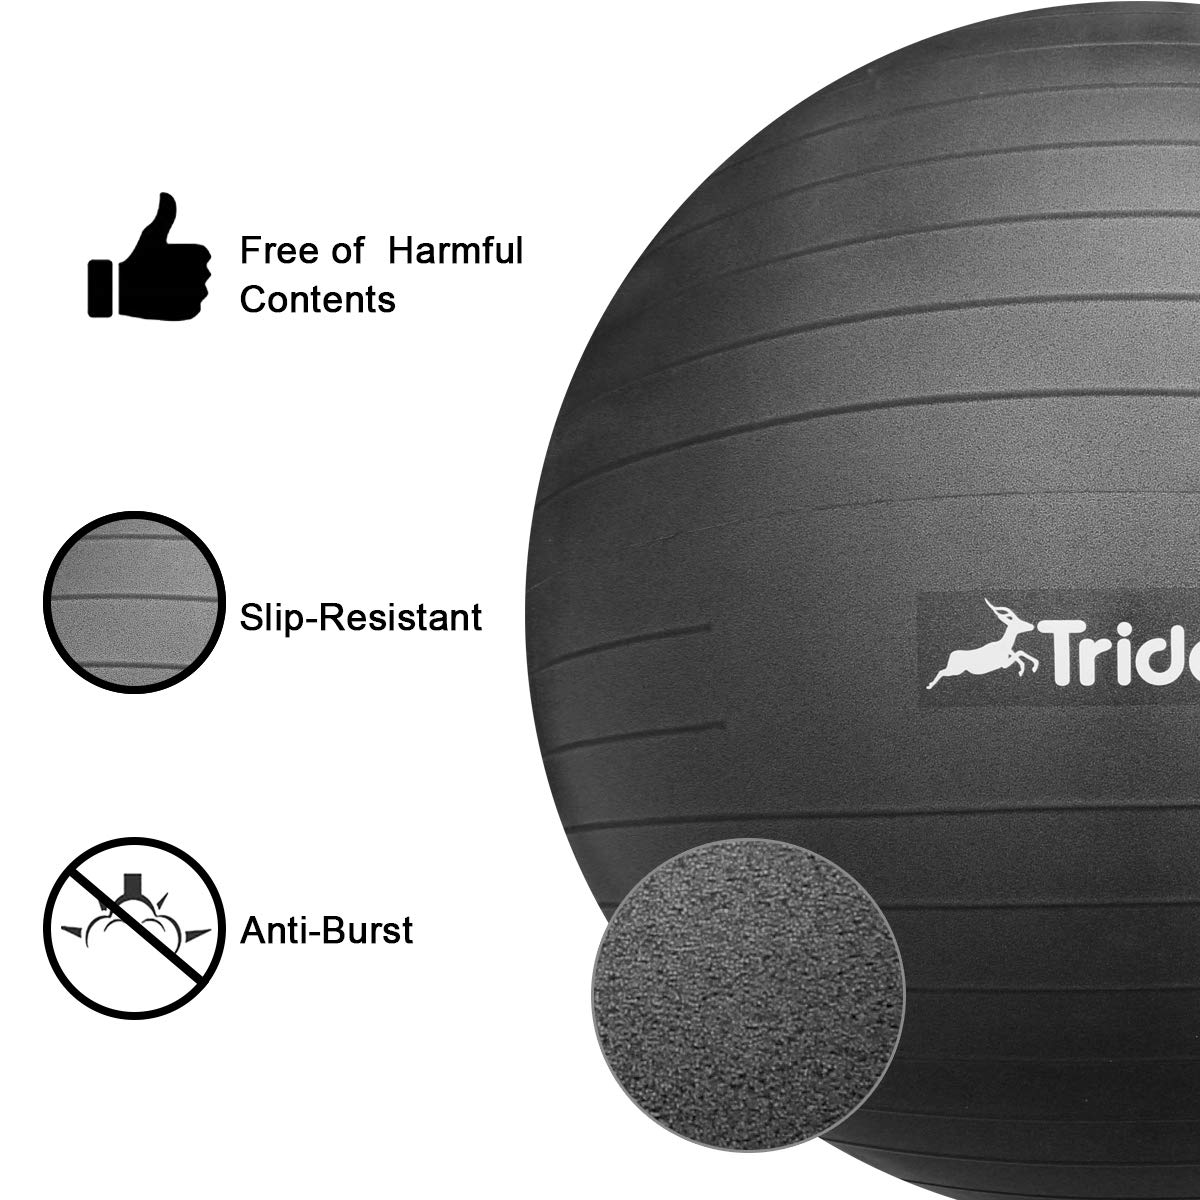 Trideer Exercise Ball (45-85cm) Yoga Ball Chair, Anti-Burst & Extra Thick, Birthing Ball with Quick Pump, Supports 2200lbs, Stability Ball (Office and Home) by Trideer (Image #4)